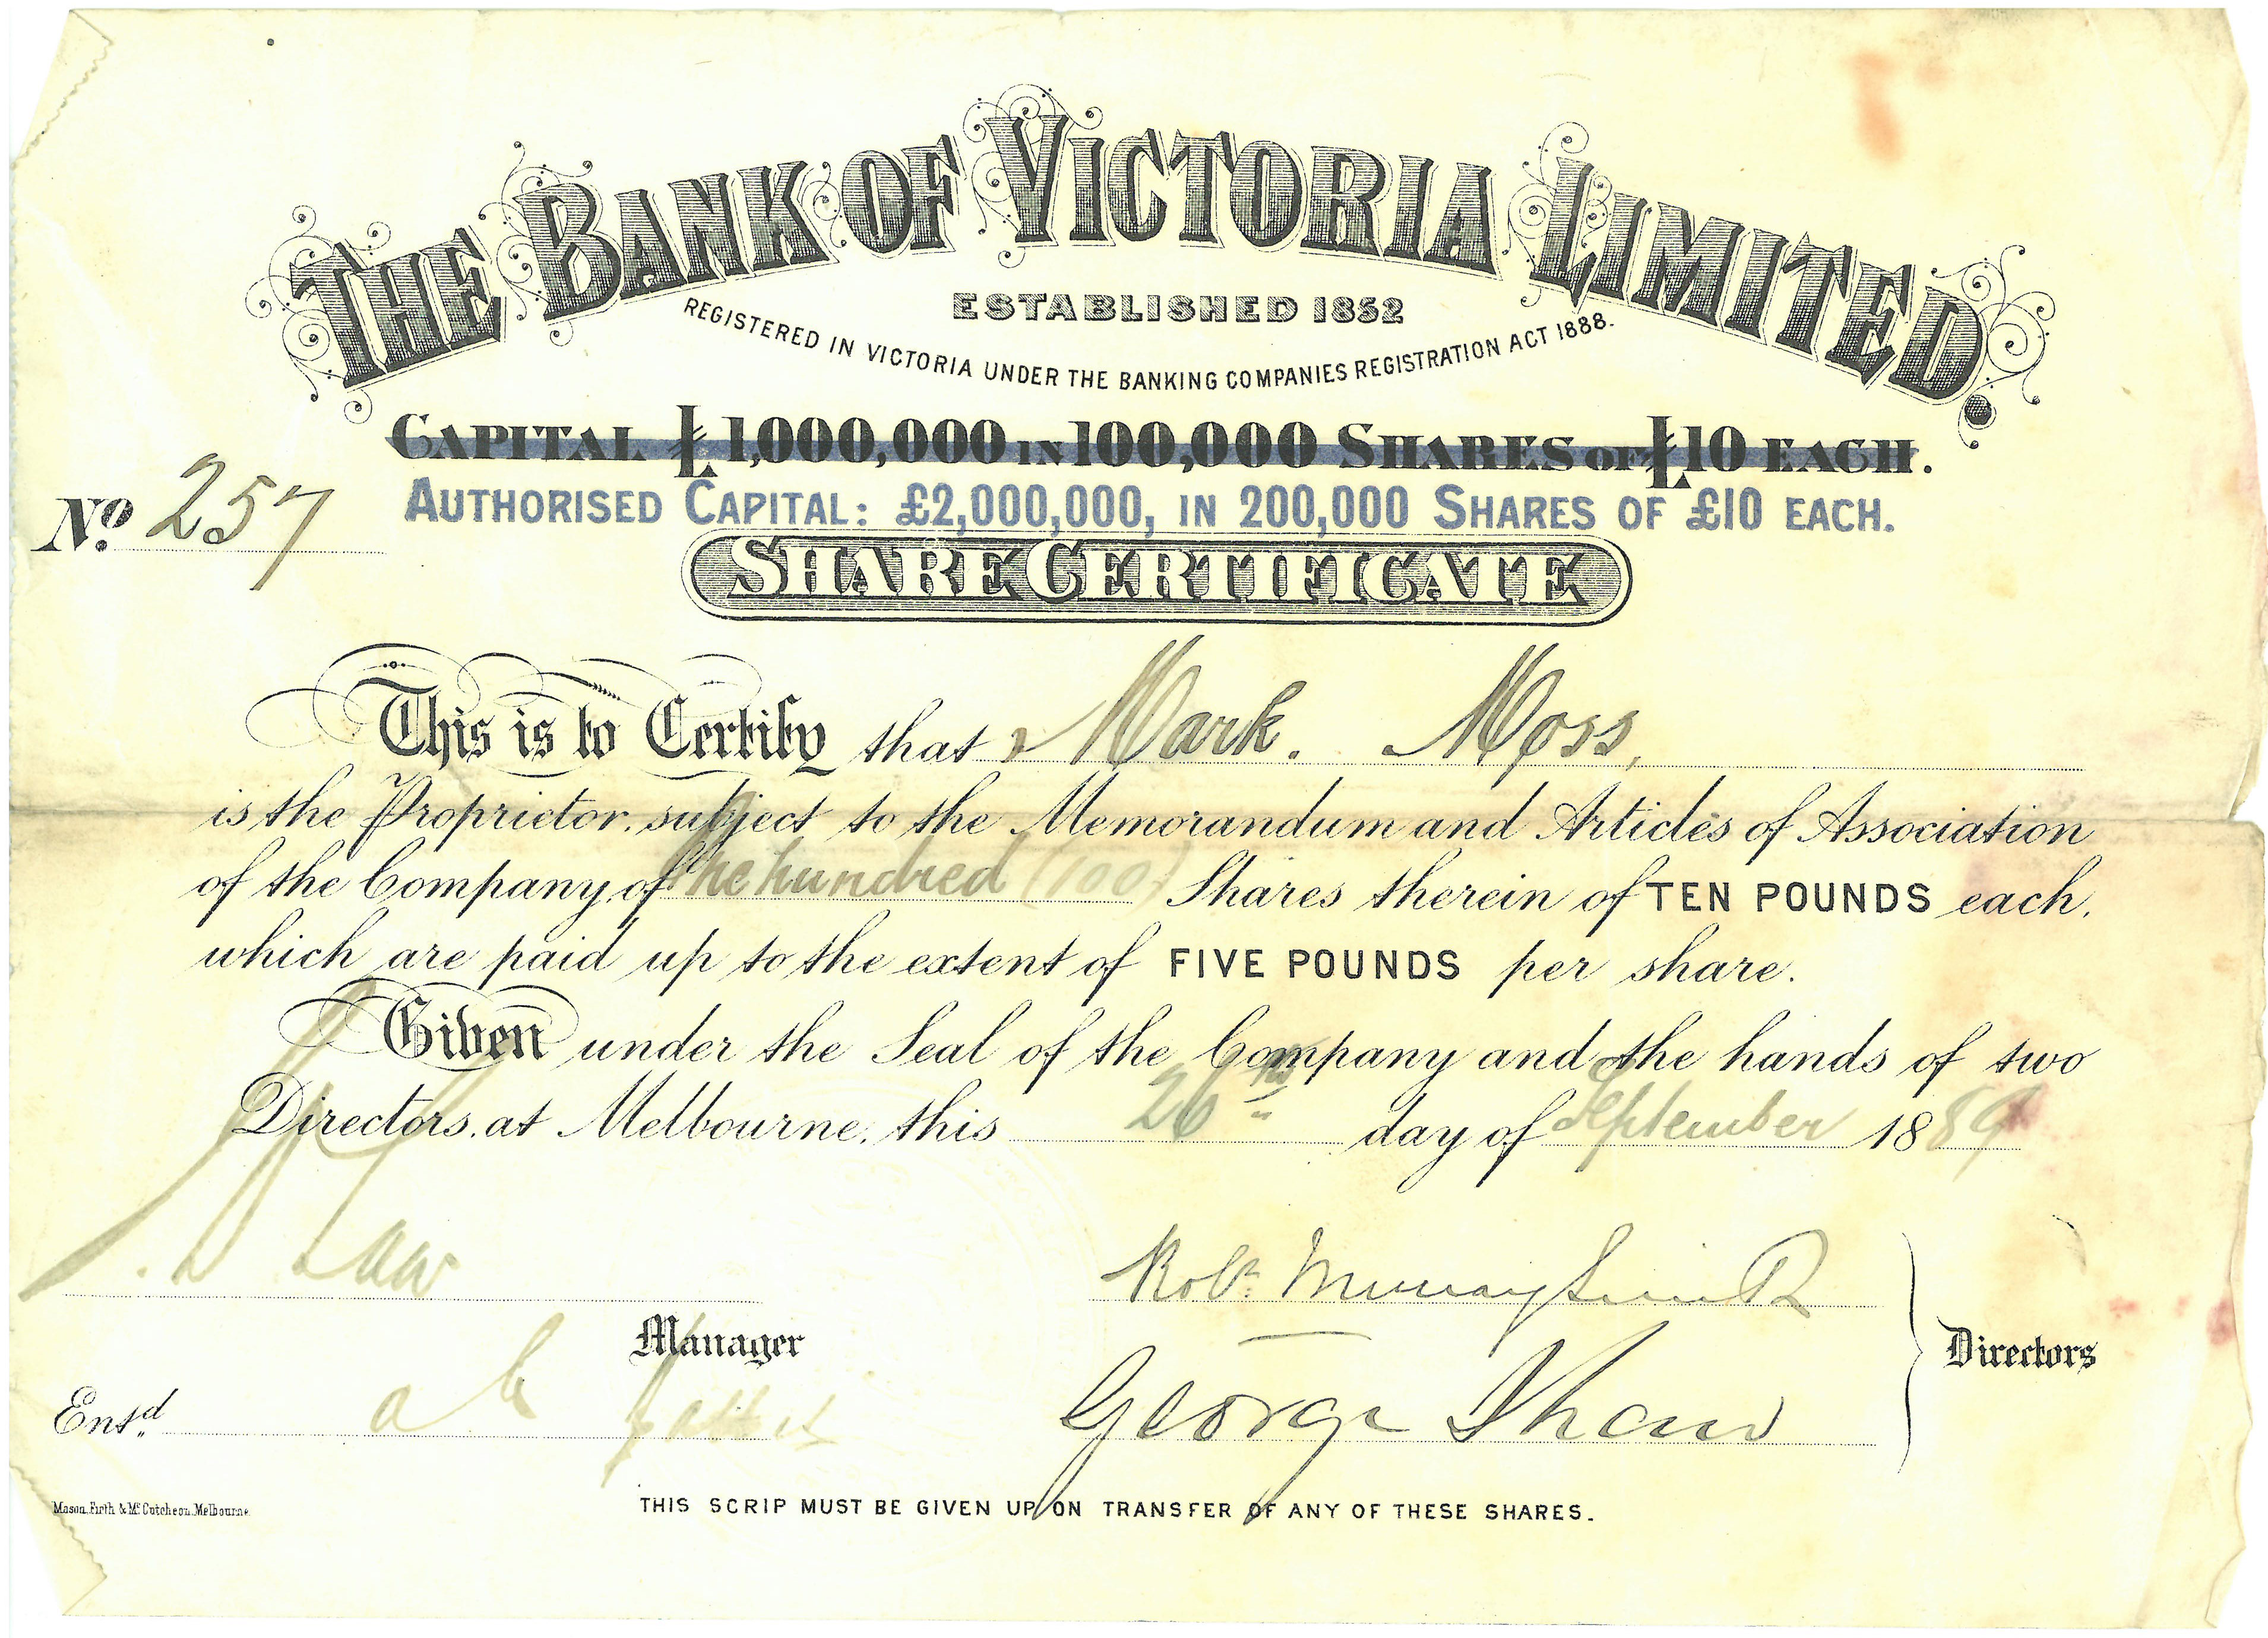 A share certificate from 1889